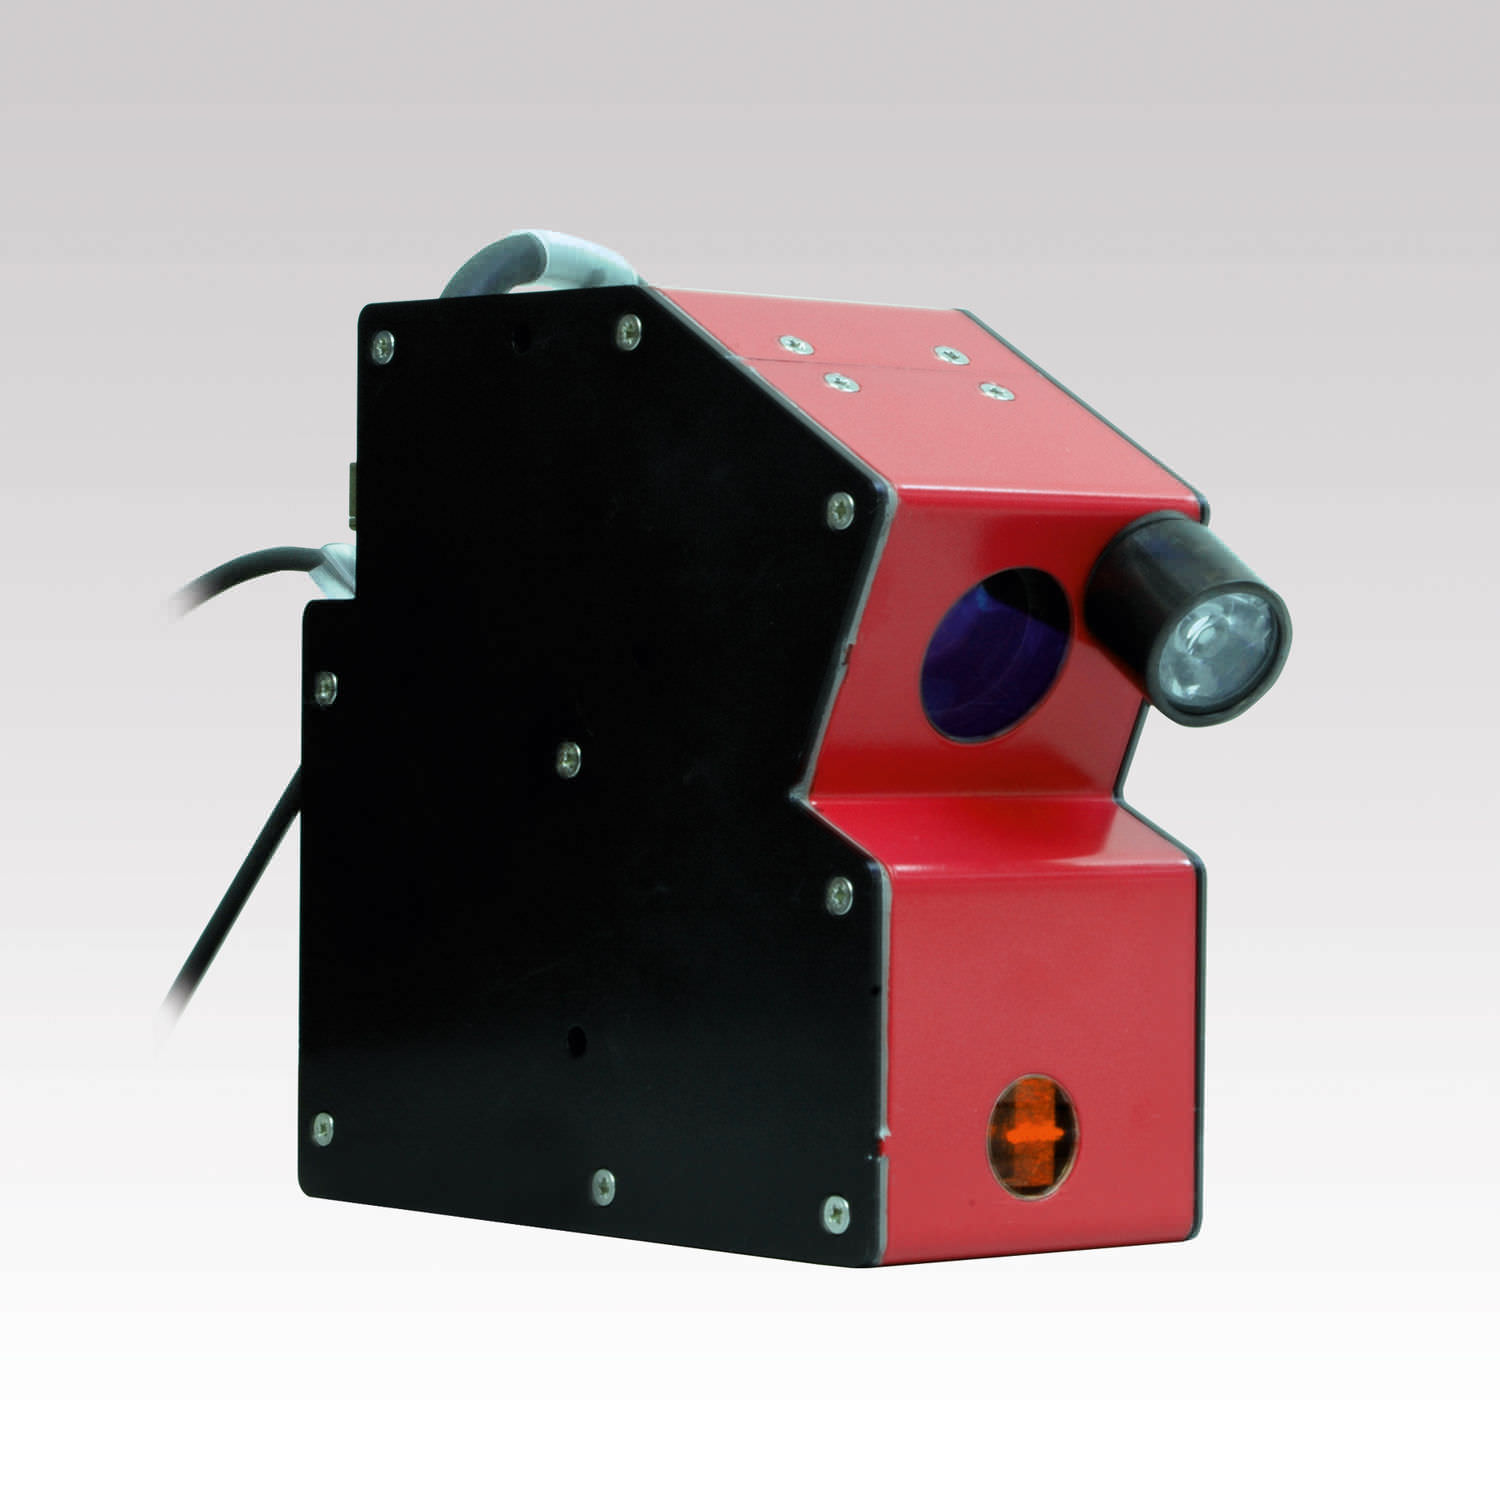 Geometry inspection system / laser / weld seam / for non